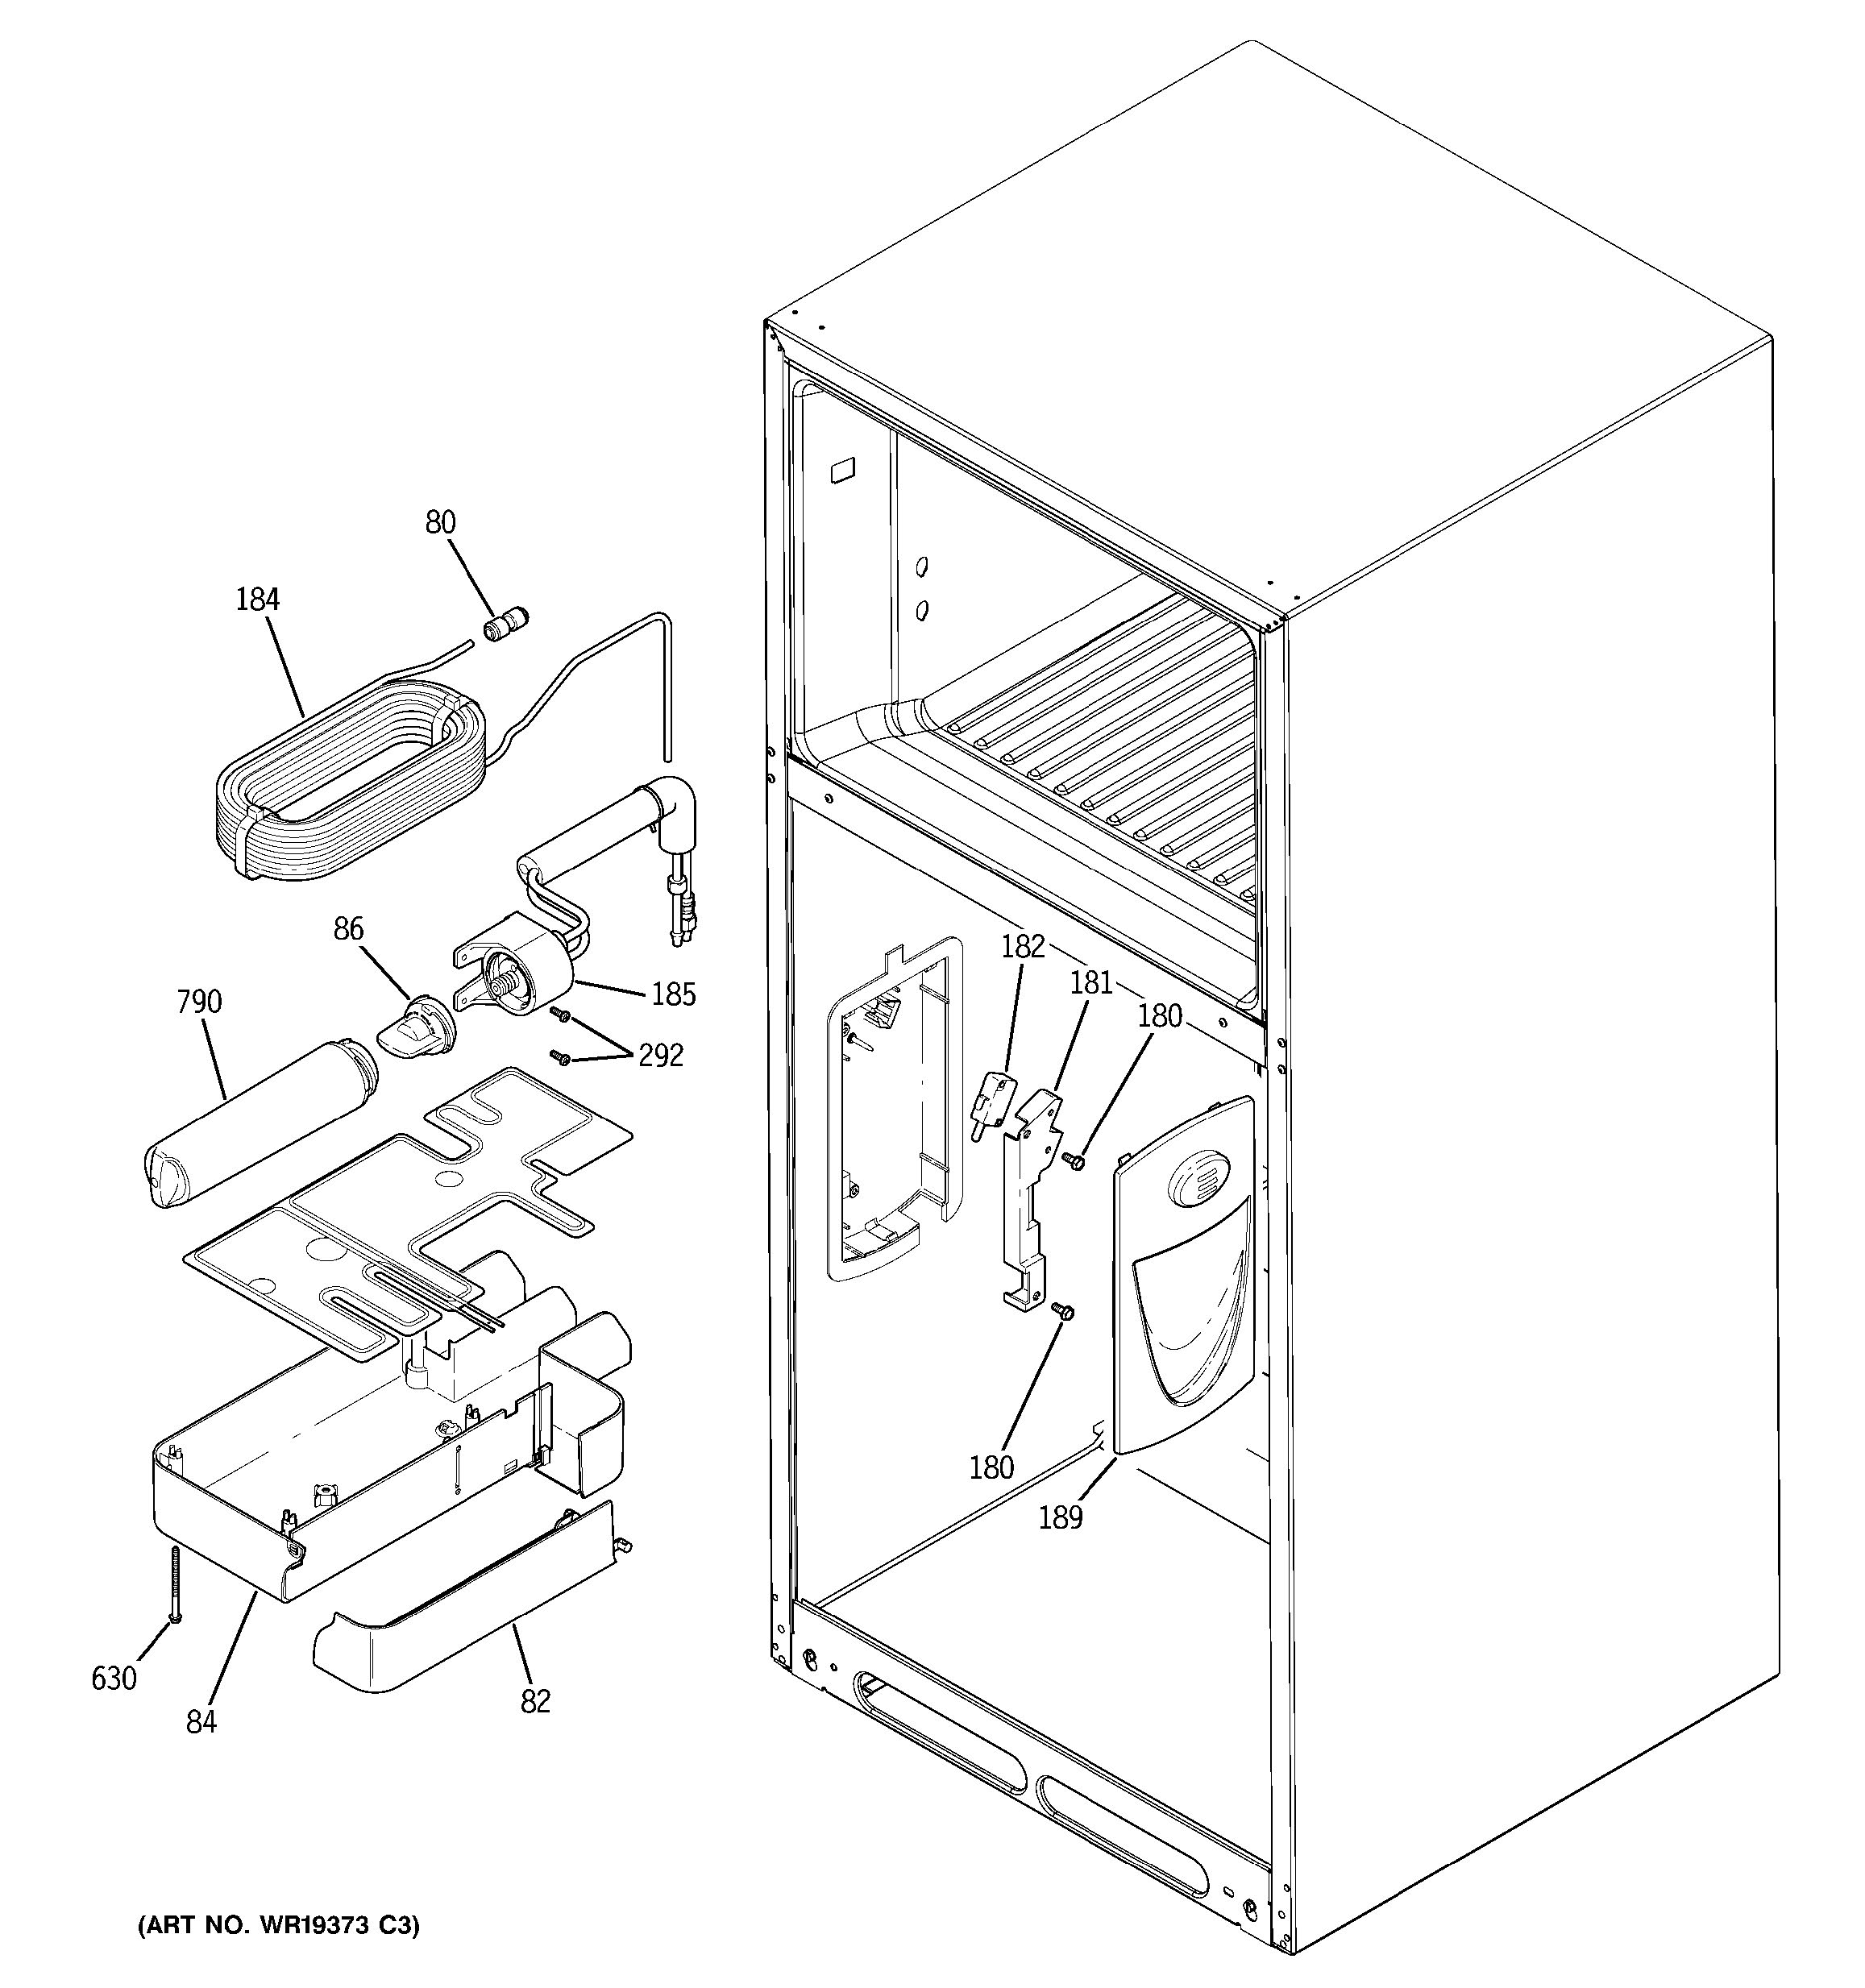 Assembly View For Water Filtration Amp Dispenser